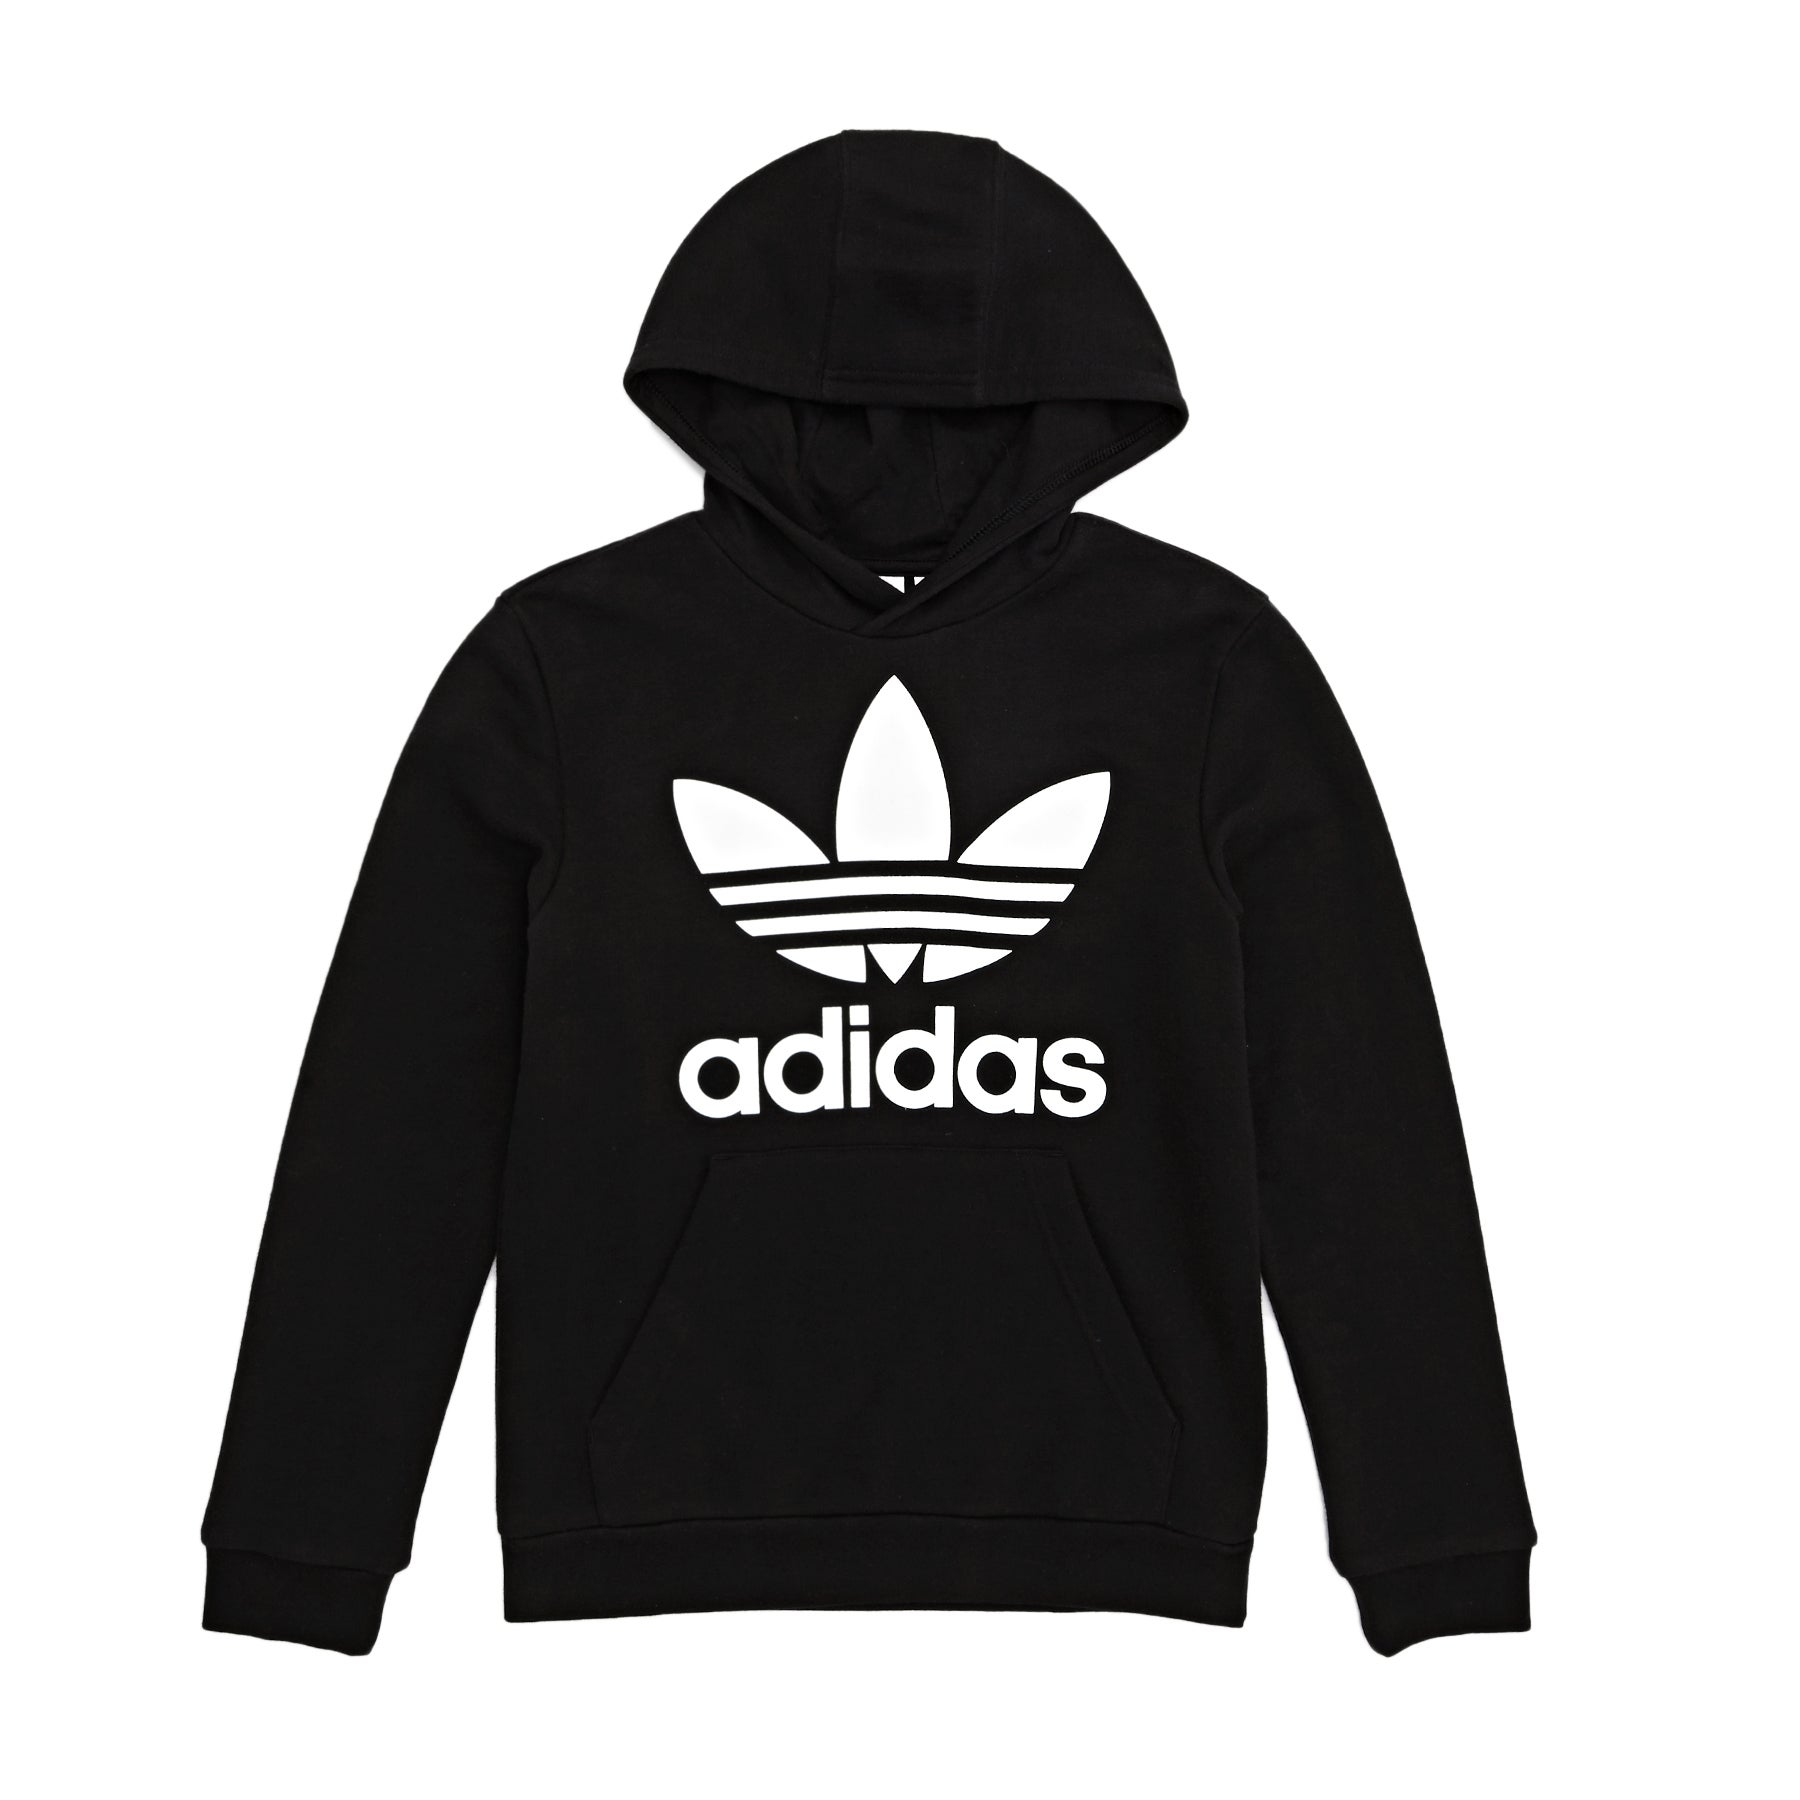 Adidas Originals Trefoil Boys Pullover Hoody - Black/white